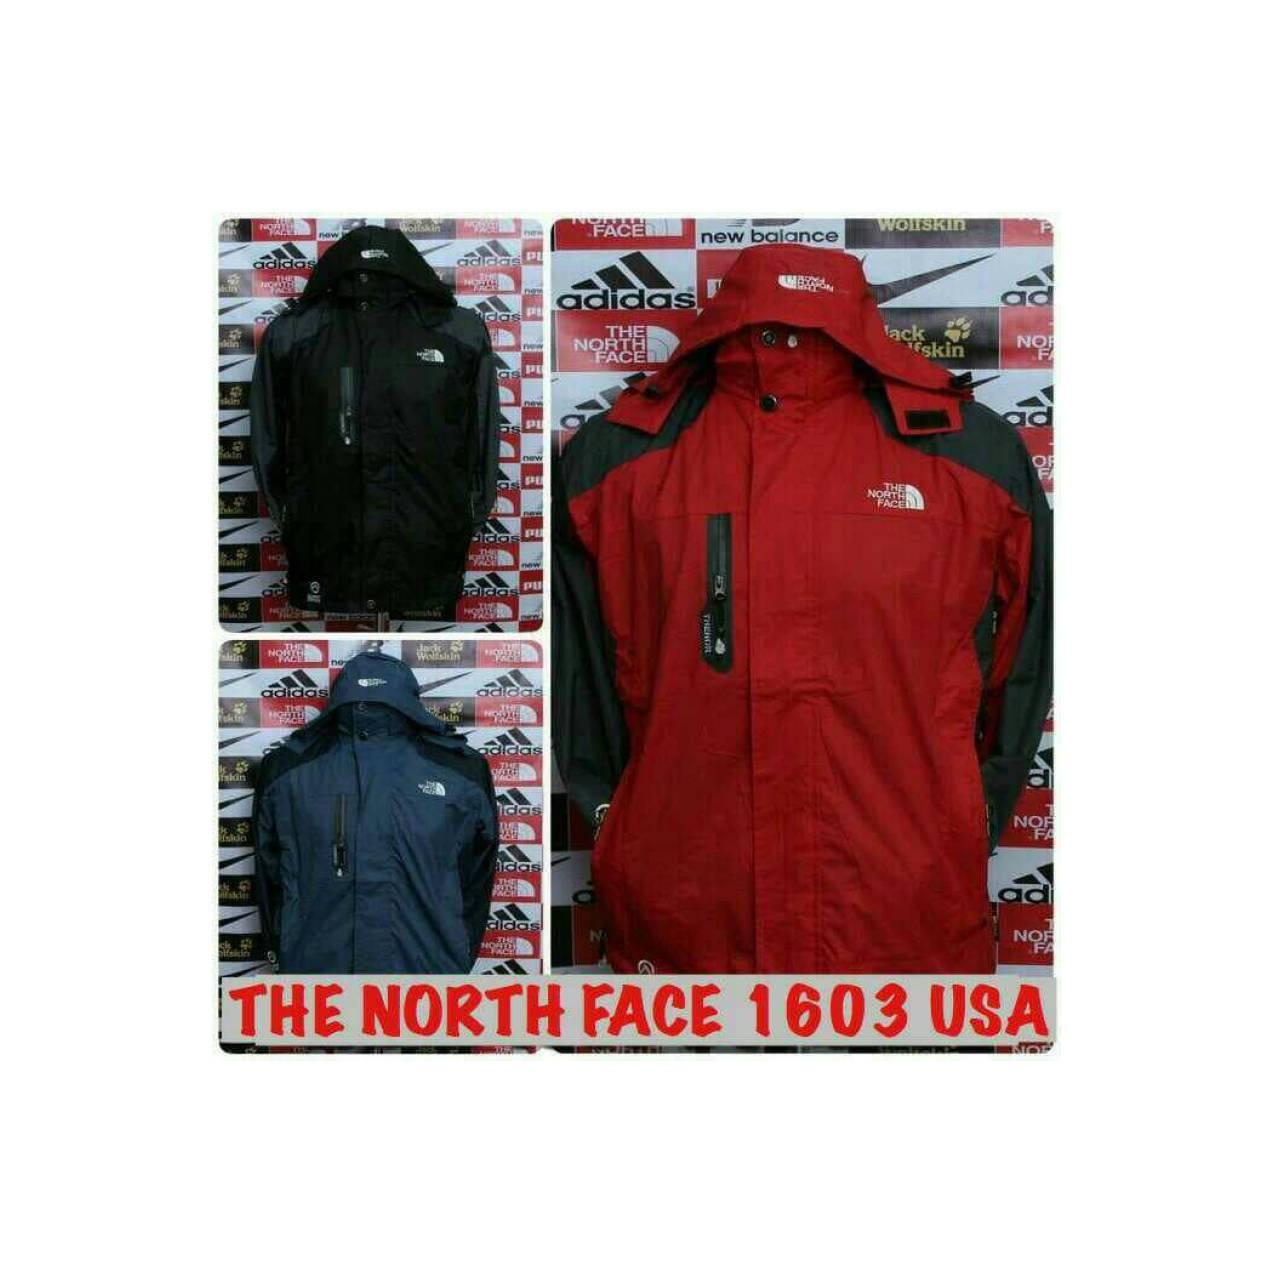 JAKET GUNUNG PRIA THE NORTH FACE 1603 WATERPROOF #REI #CONSINA #EIGER